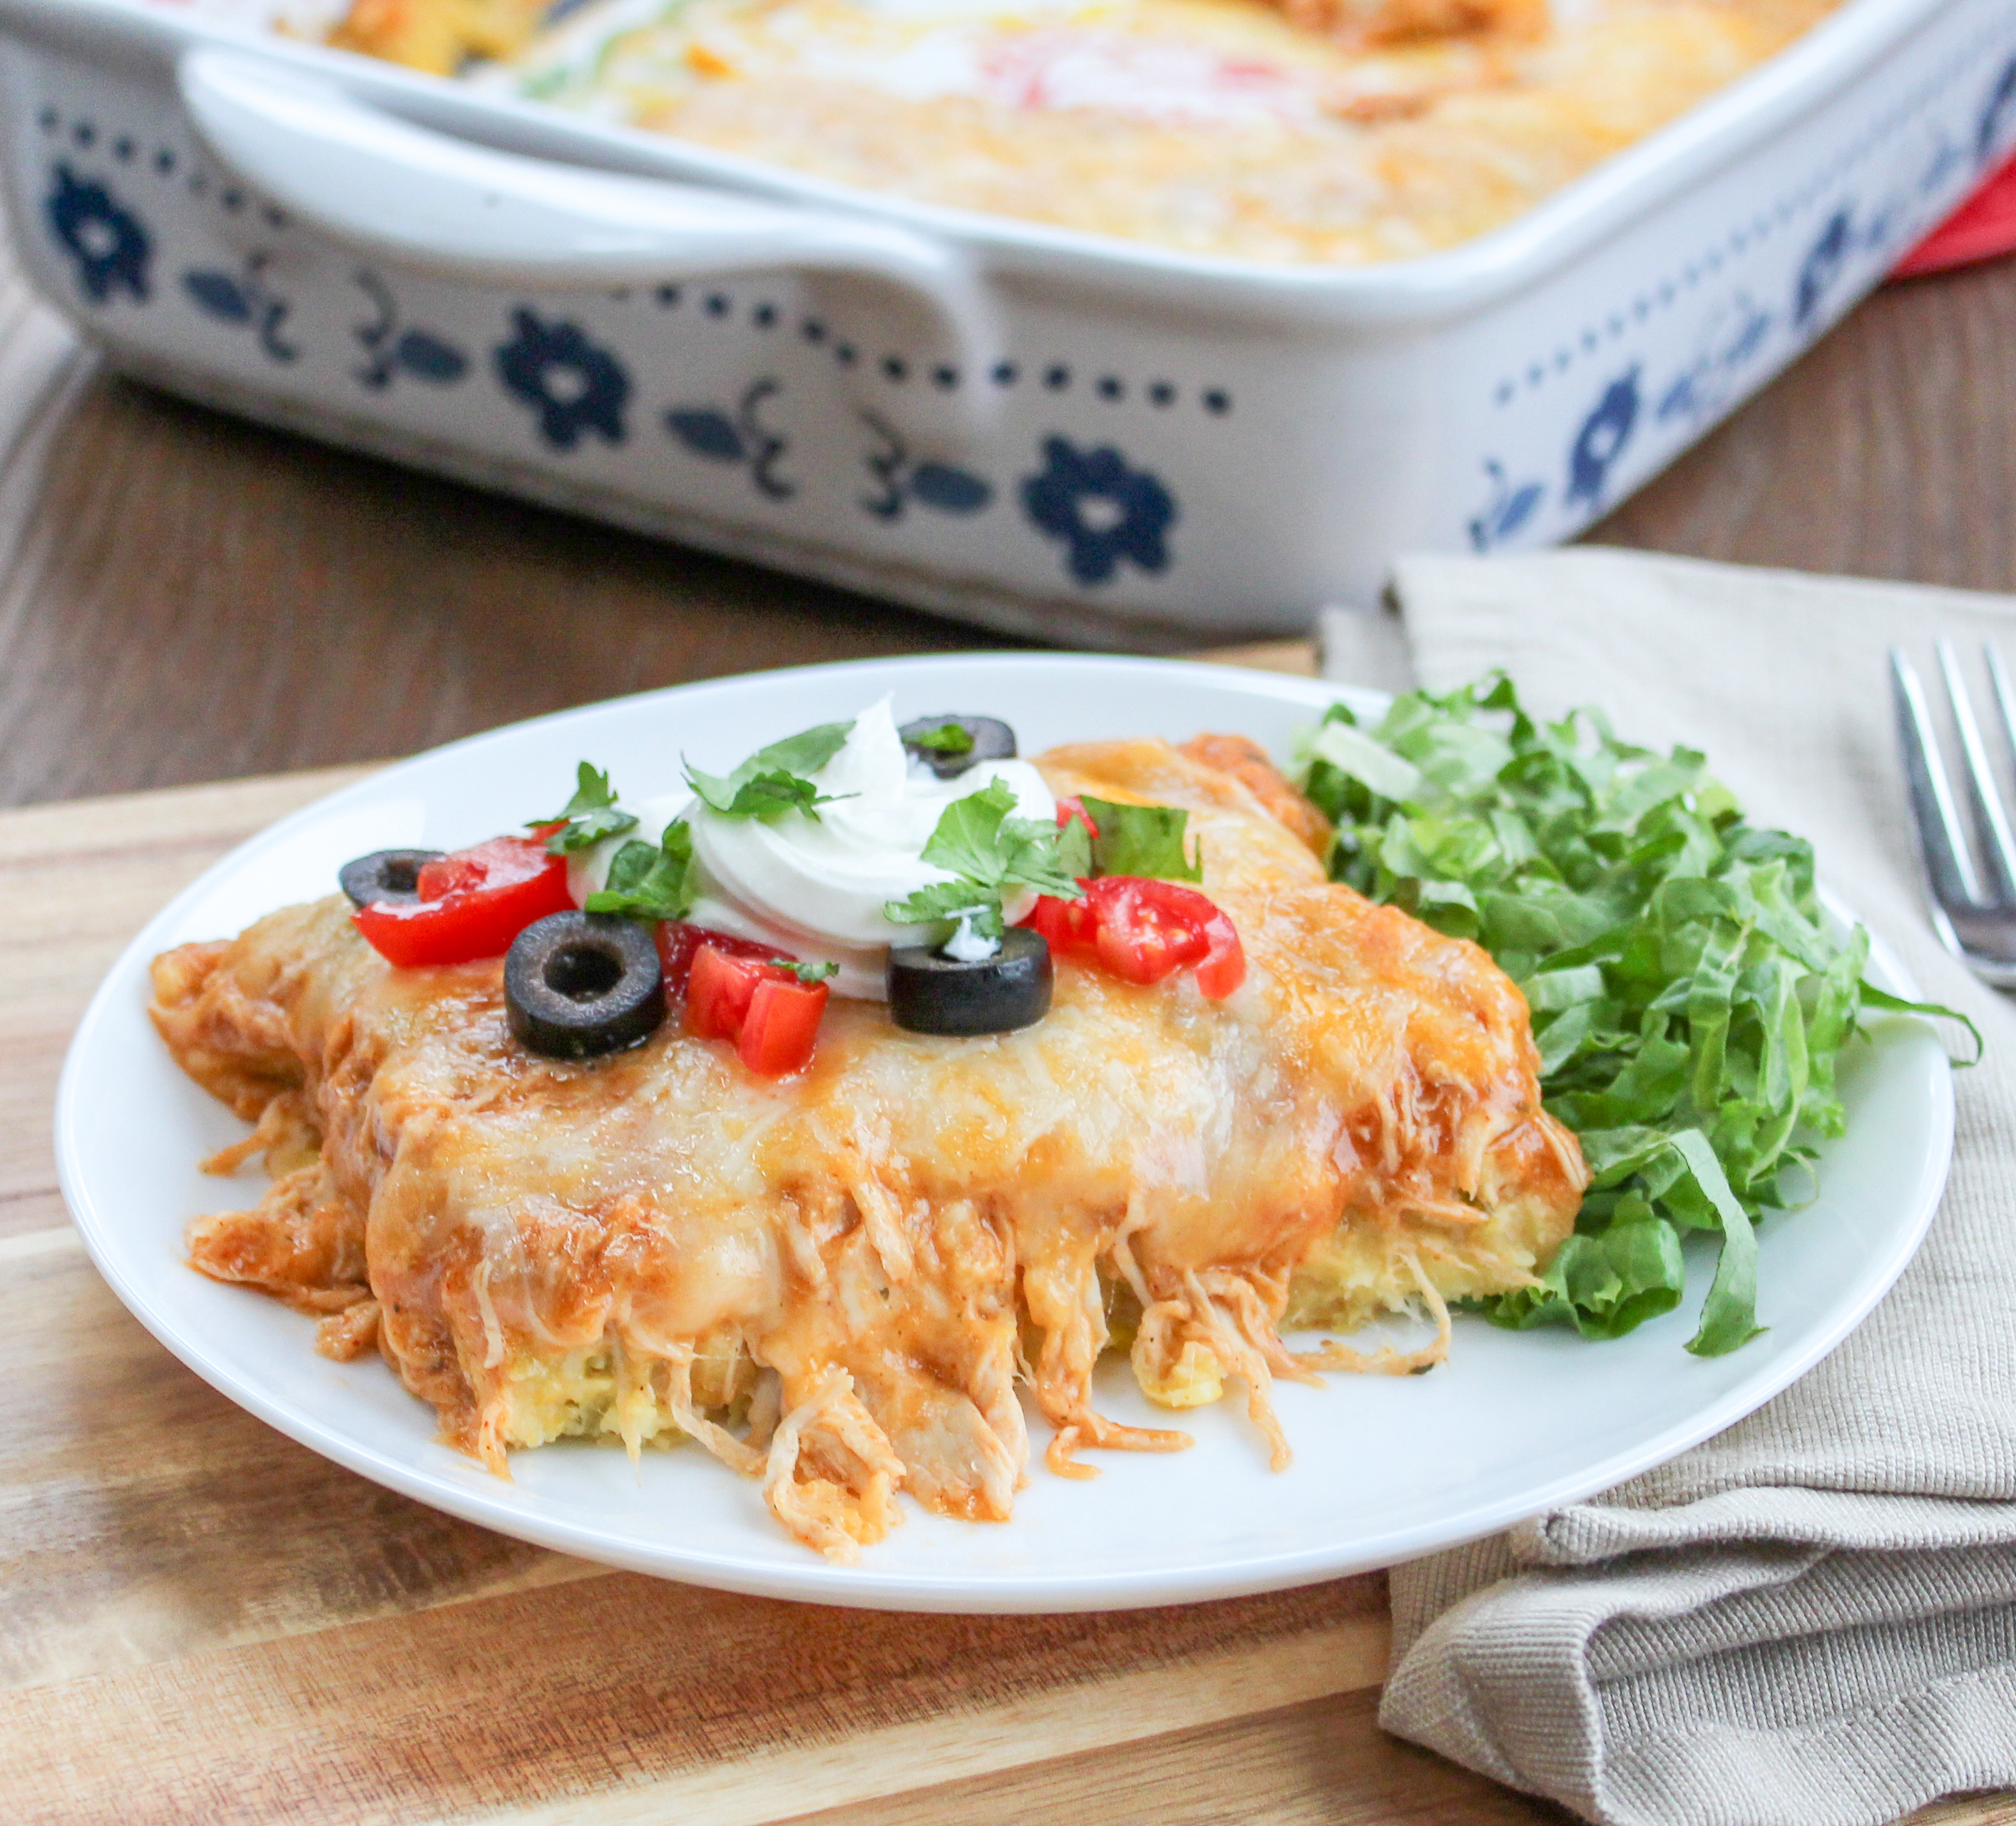 Portion of chicken tamale casserole with cheese on a plate with a side salad